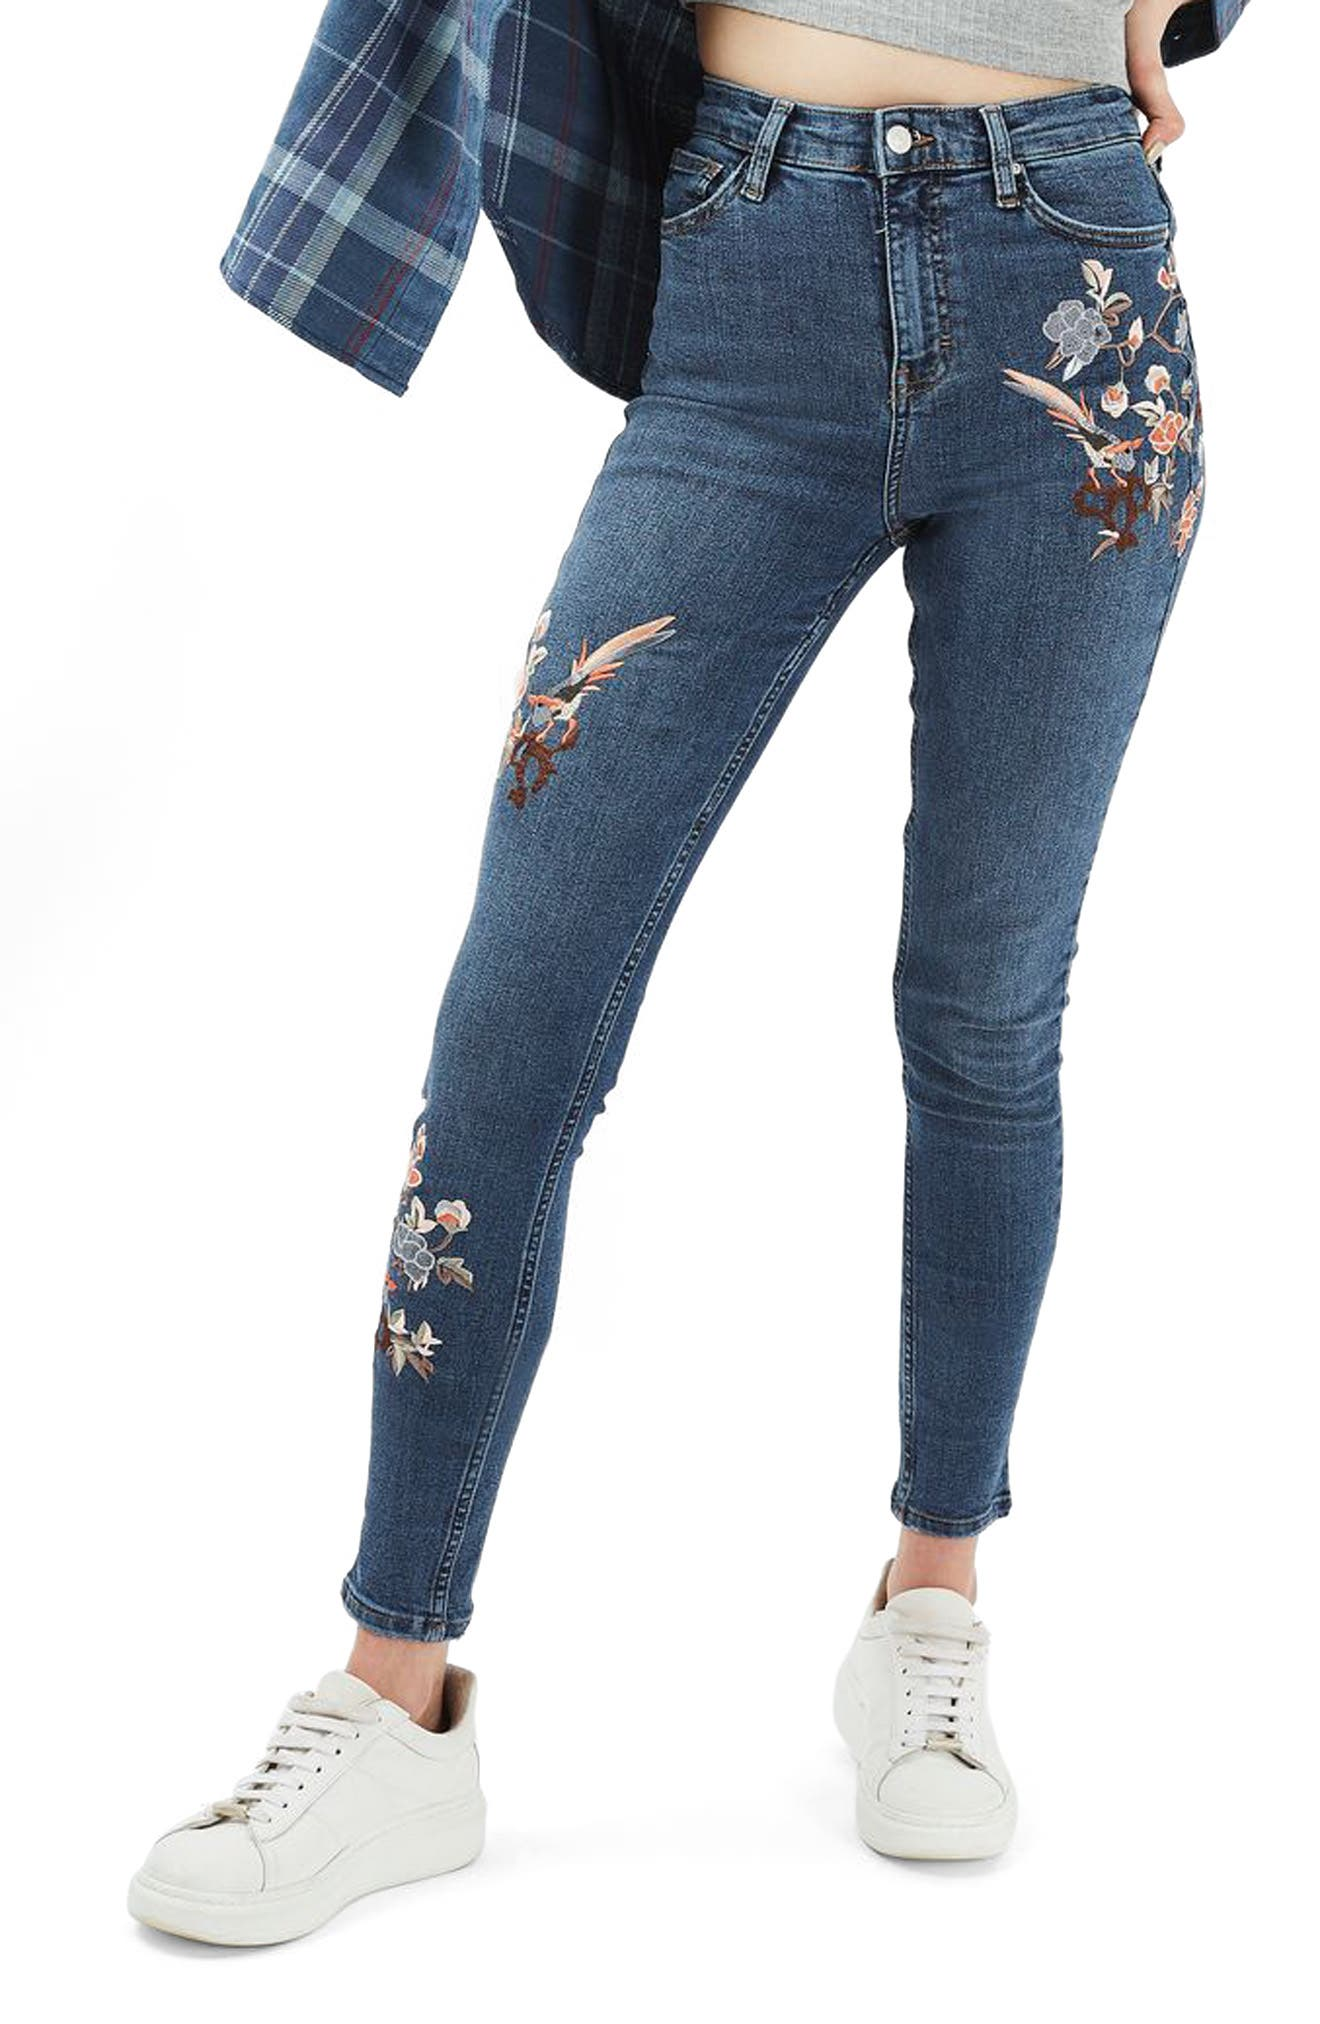 Alternate Image 1 Selected - Topshop Jamie Embroidered Skinny Jeans (Tall)